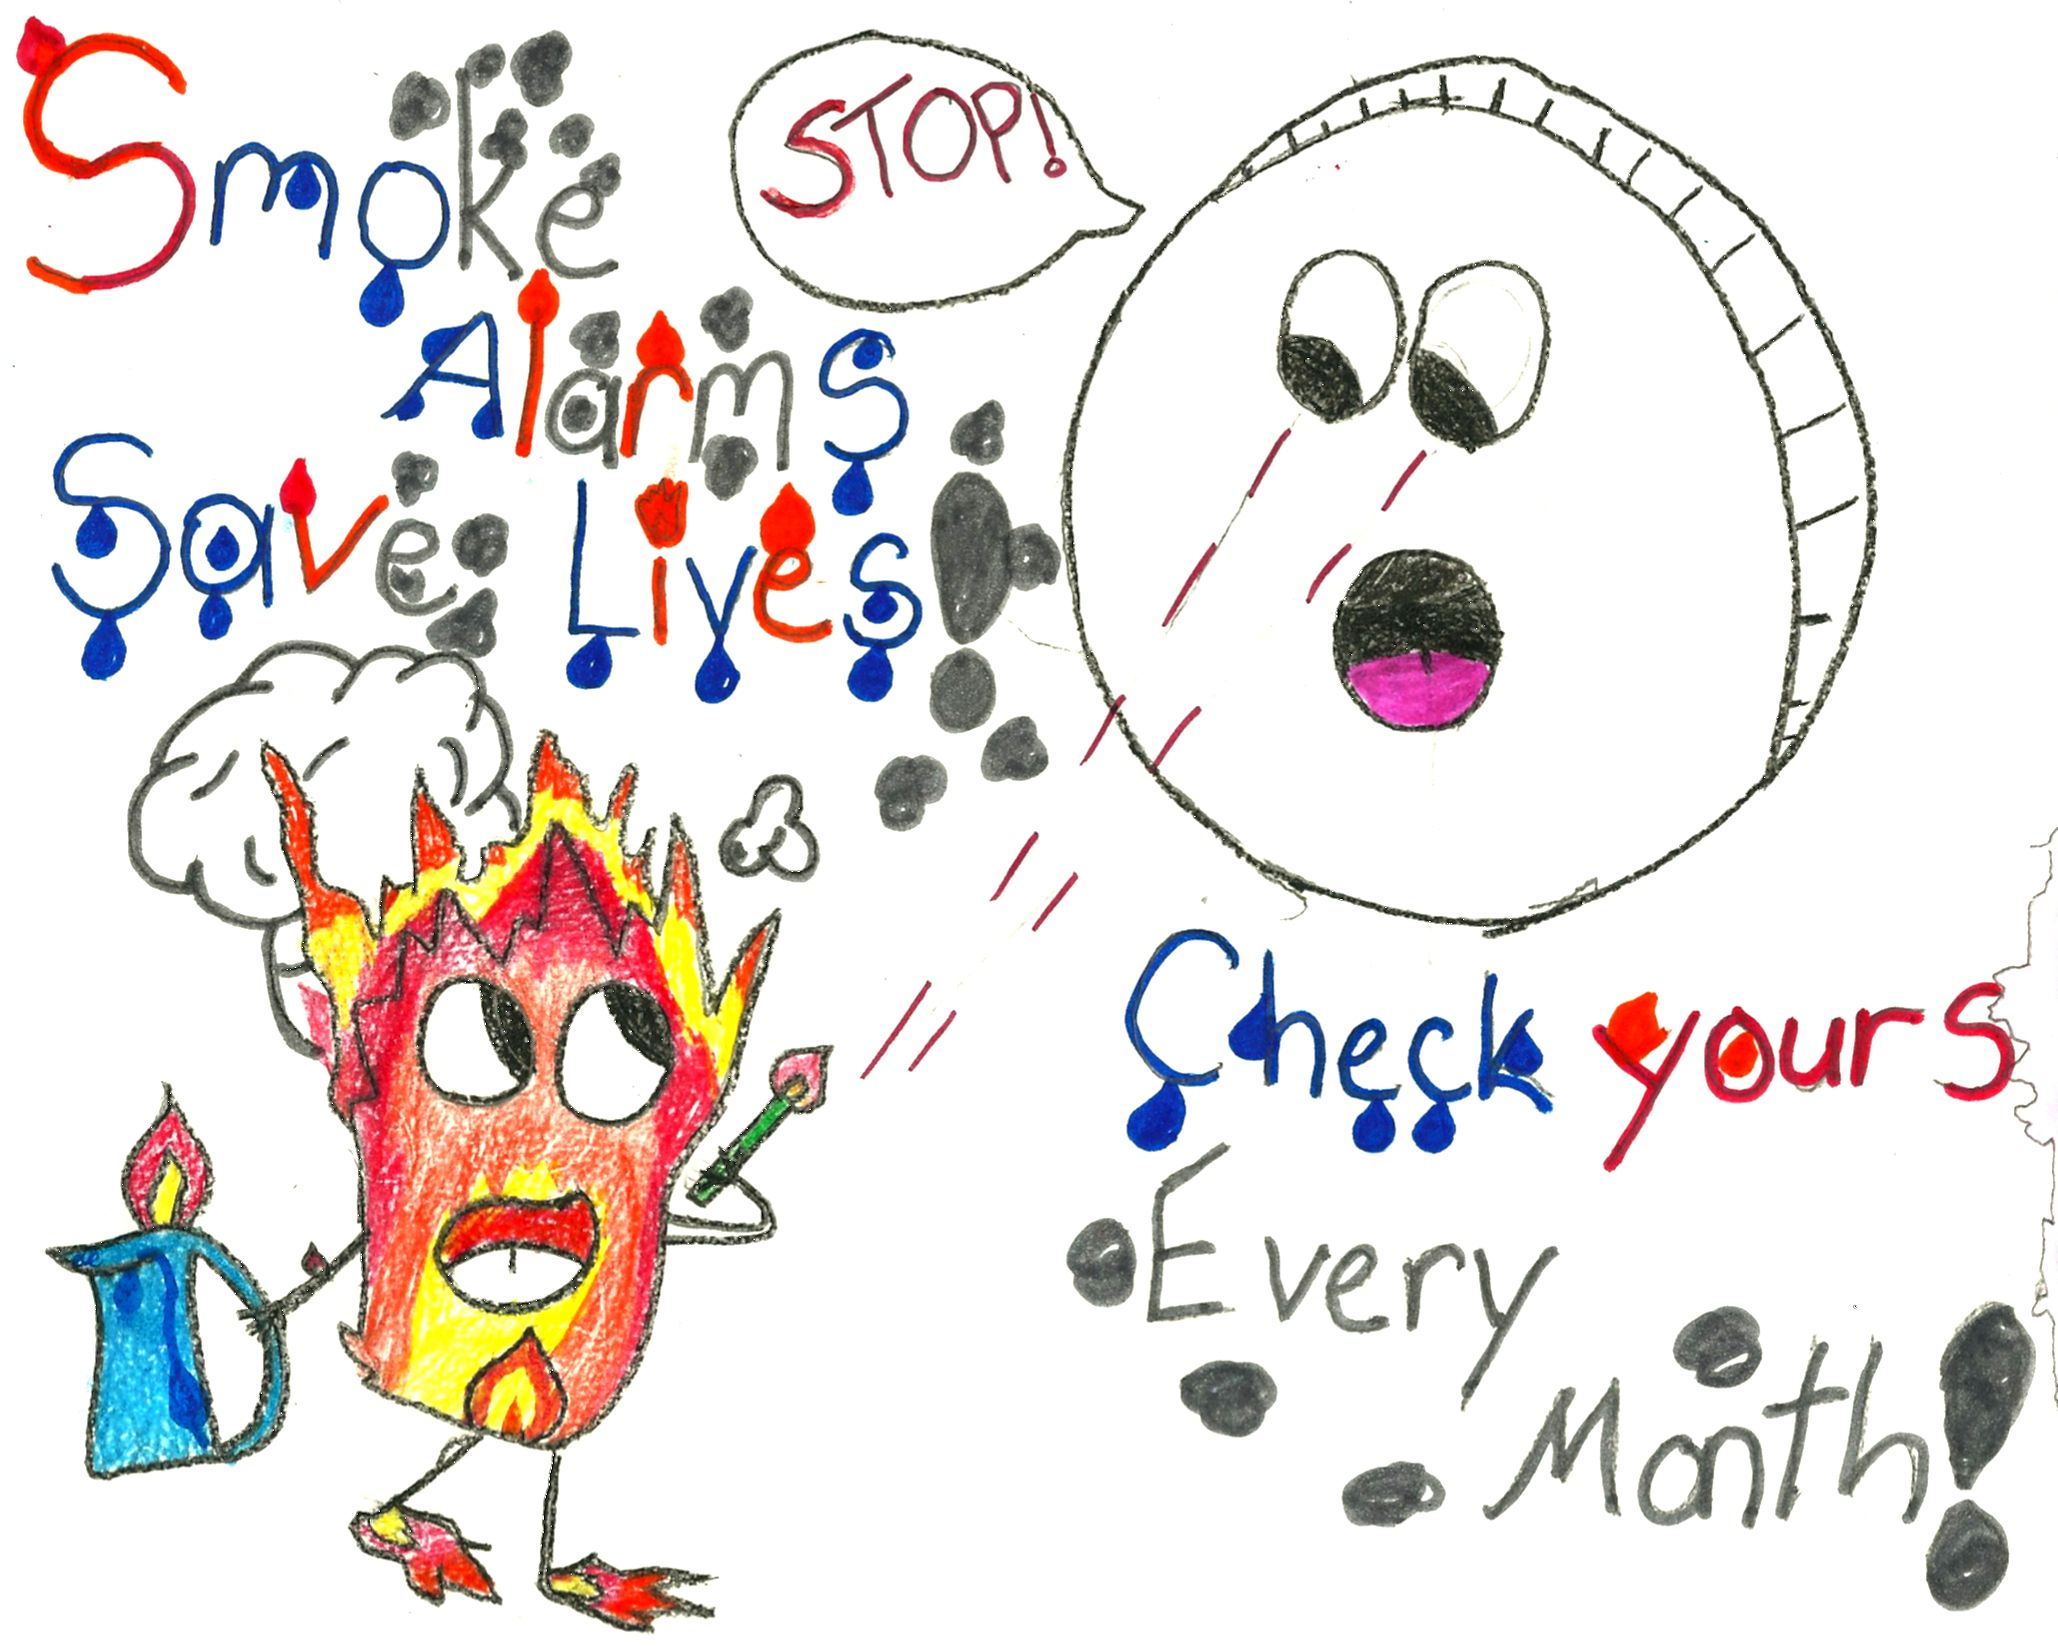 Fire prevention week 2018 clipart svg black and white library Fire Safety Poster Contest | Elementary Art Education | Fire safety ... svg black and white library